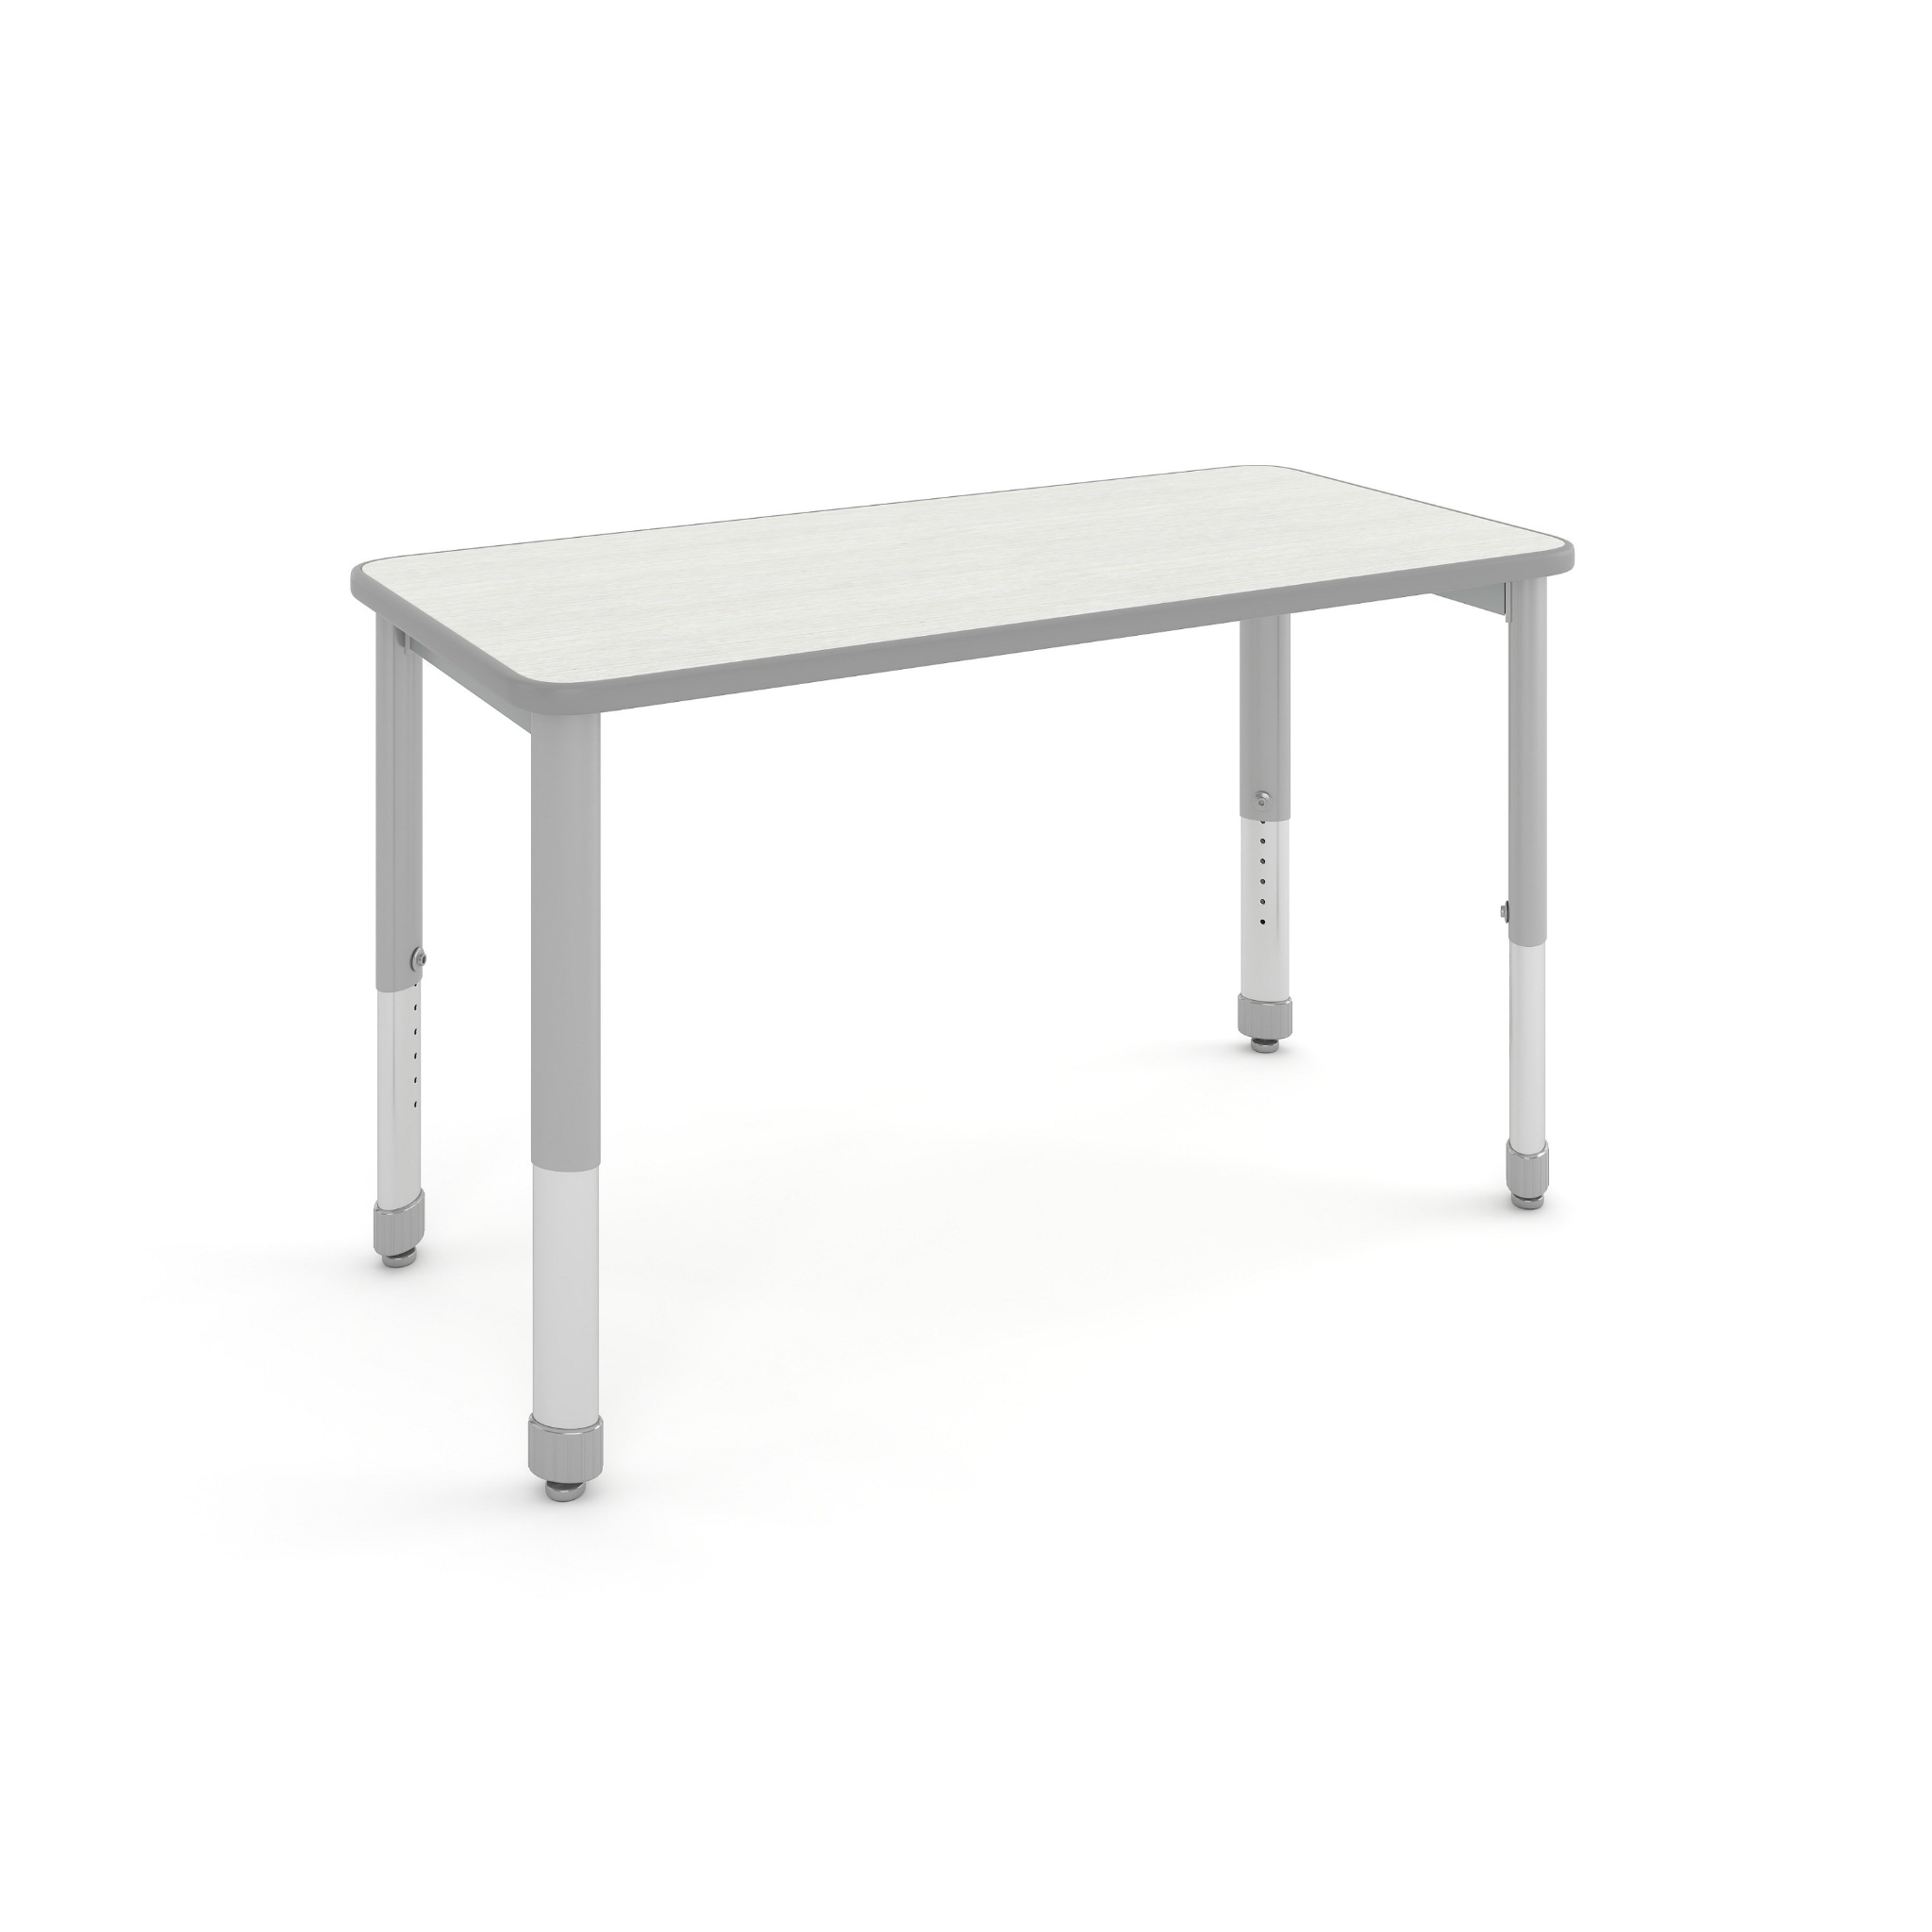 Smith System Rectangle Activity Table - Steelcase Hong Kong